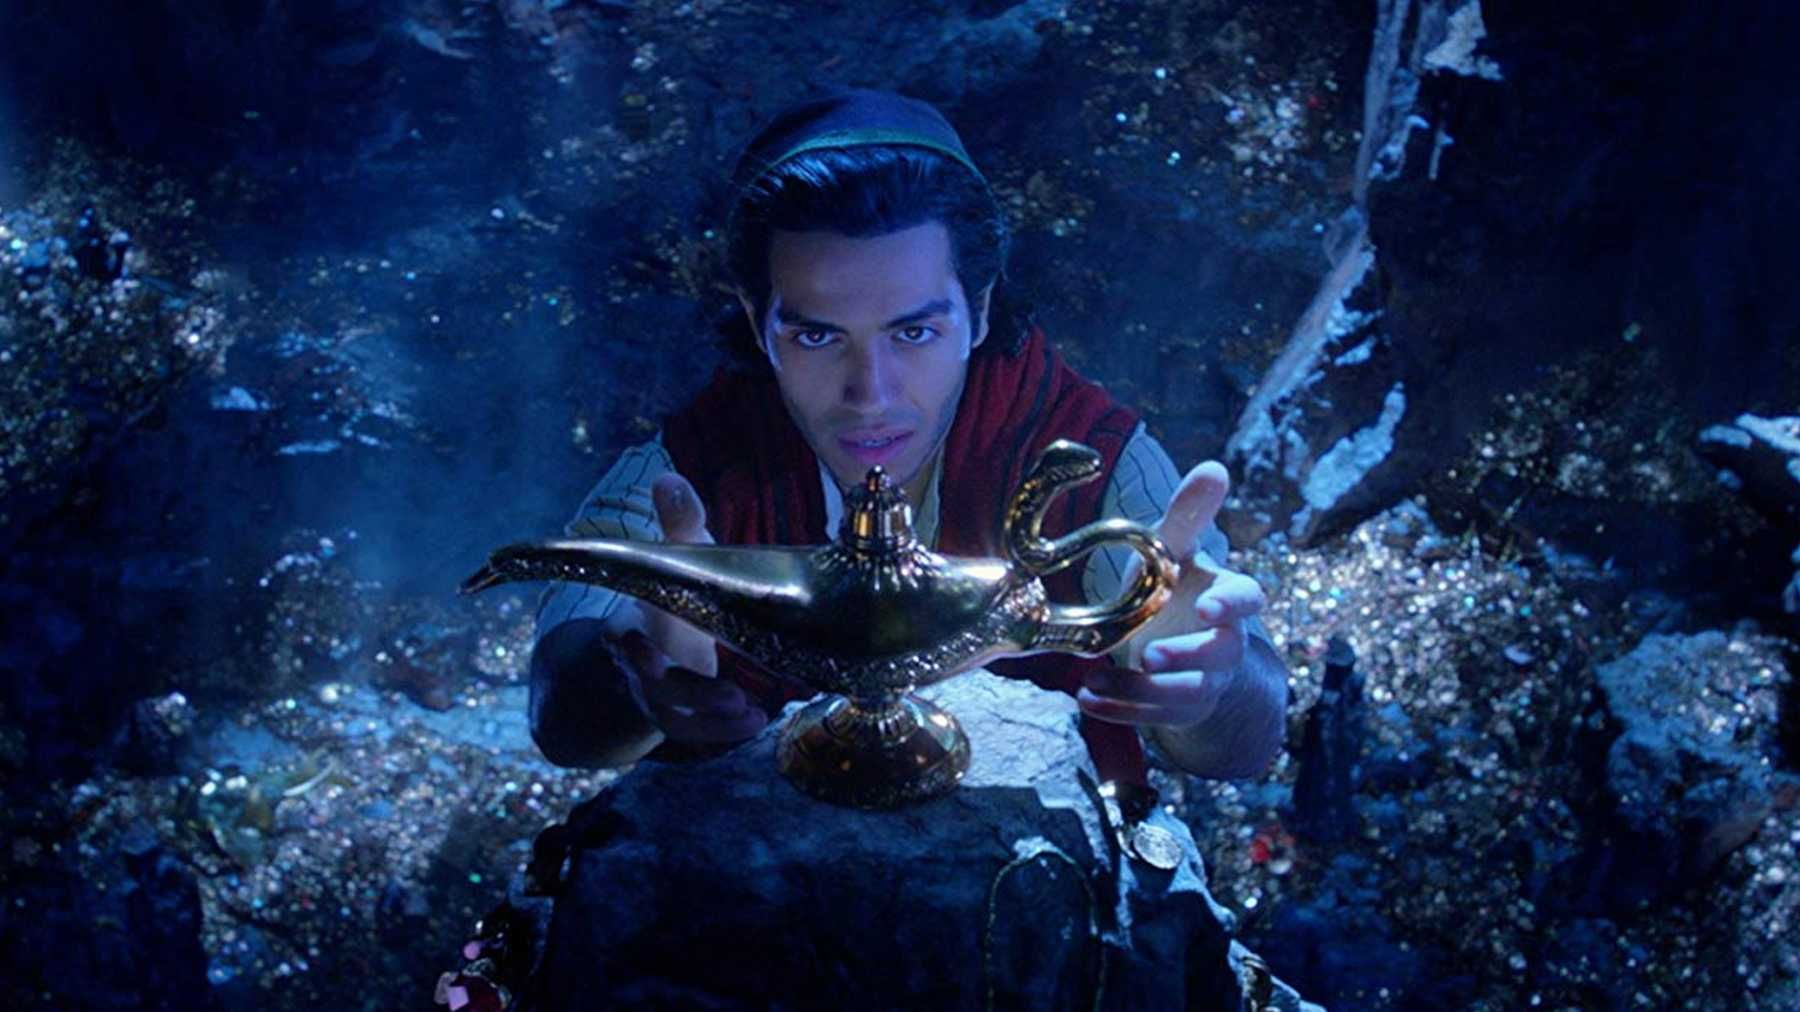 aladdin 2019 on Disney+